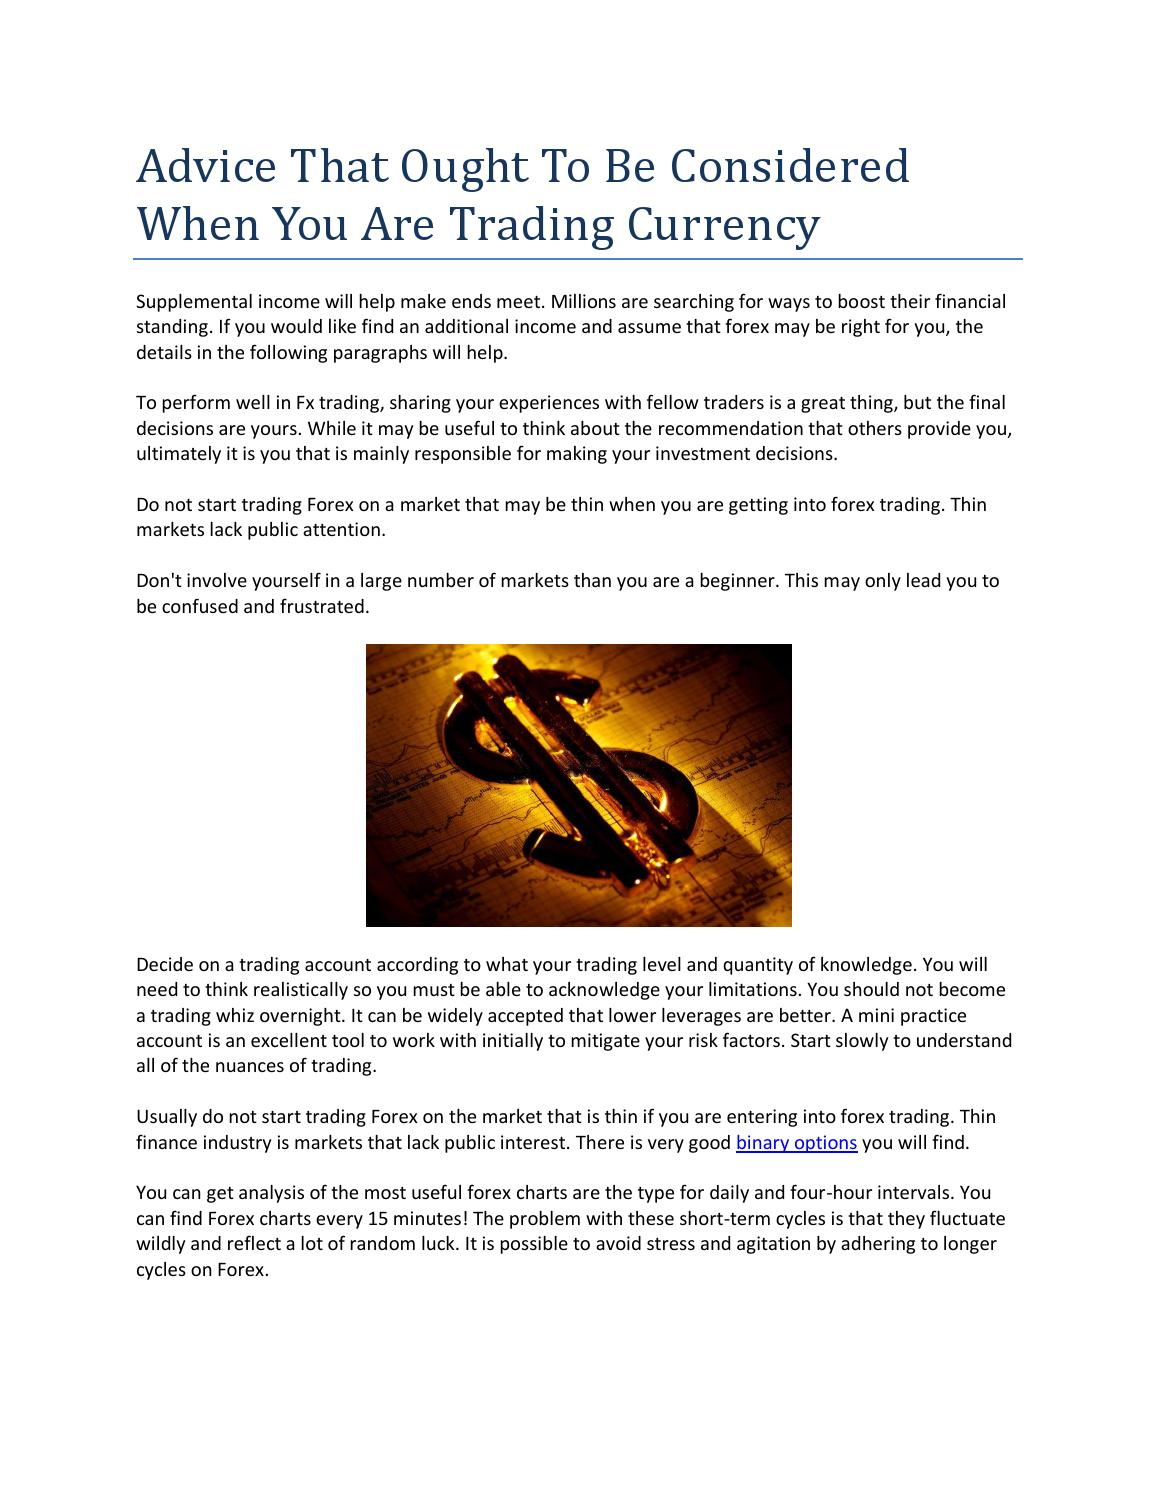 binary options daily tips for supervisors